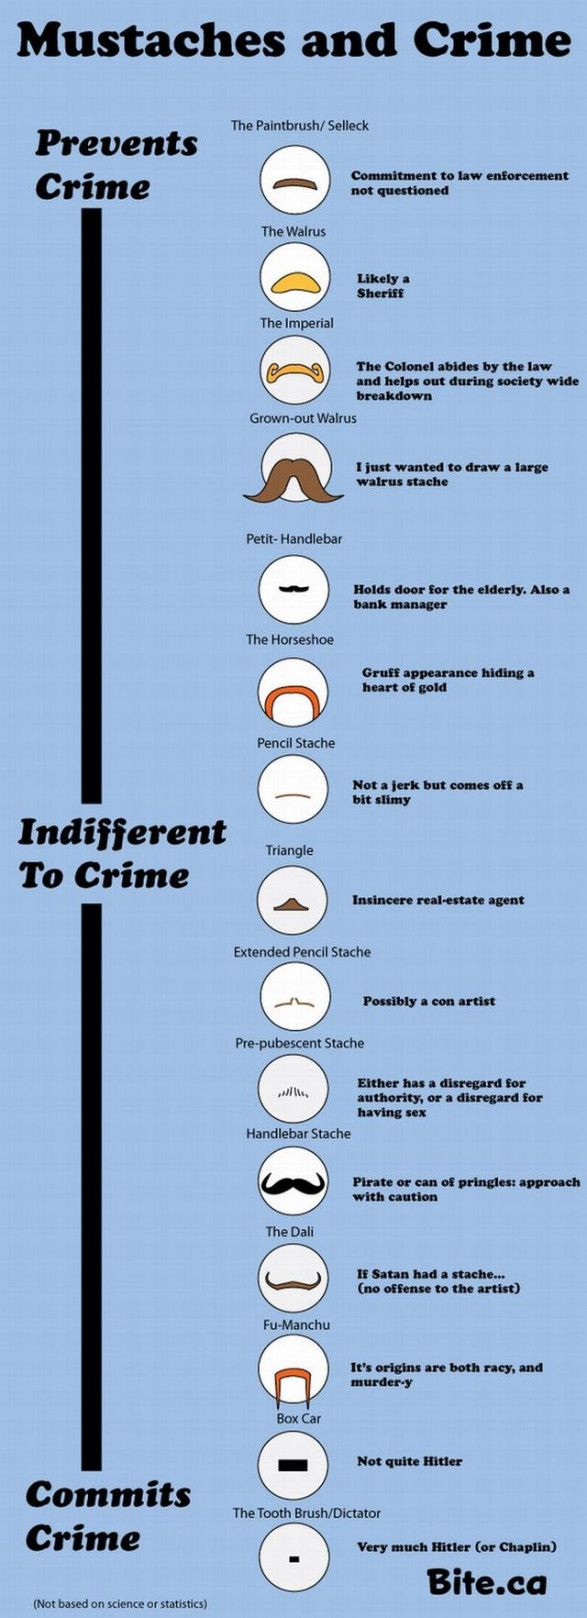 Mustaches and Crime